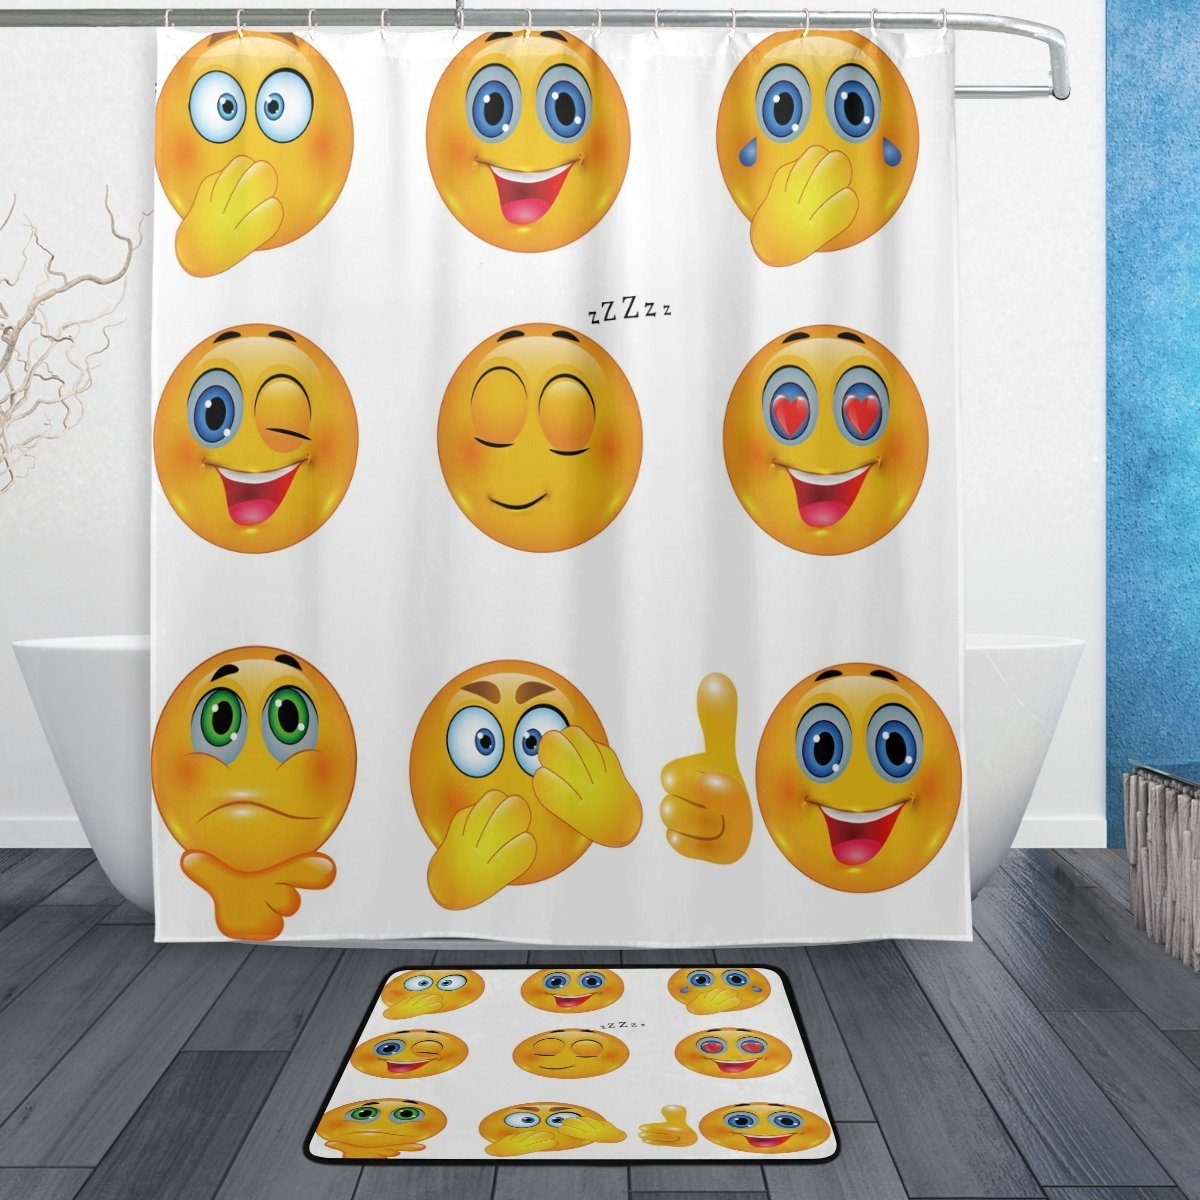 Funny Emoji Shower Curtain And Mat Set 3D Yellow Smiley Emotional Faces Waterproof Fabric Bathroom